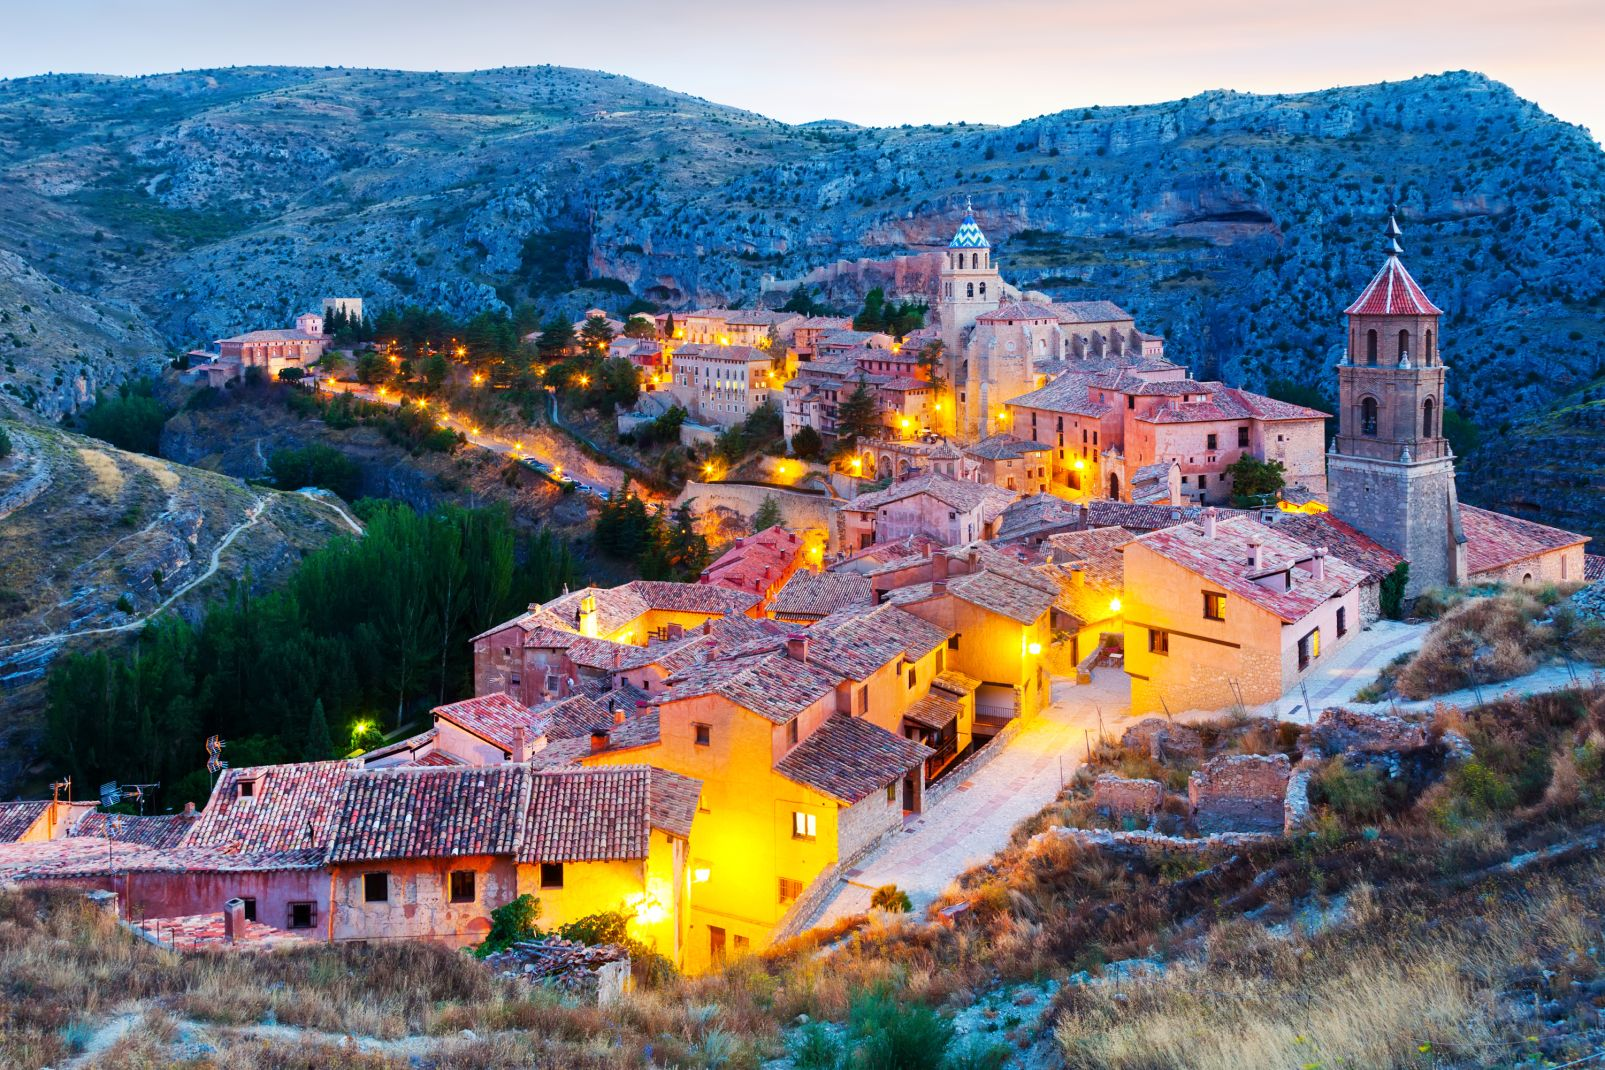 village, albarracin, angora, espagne, europe, aragon